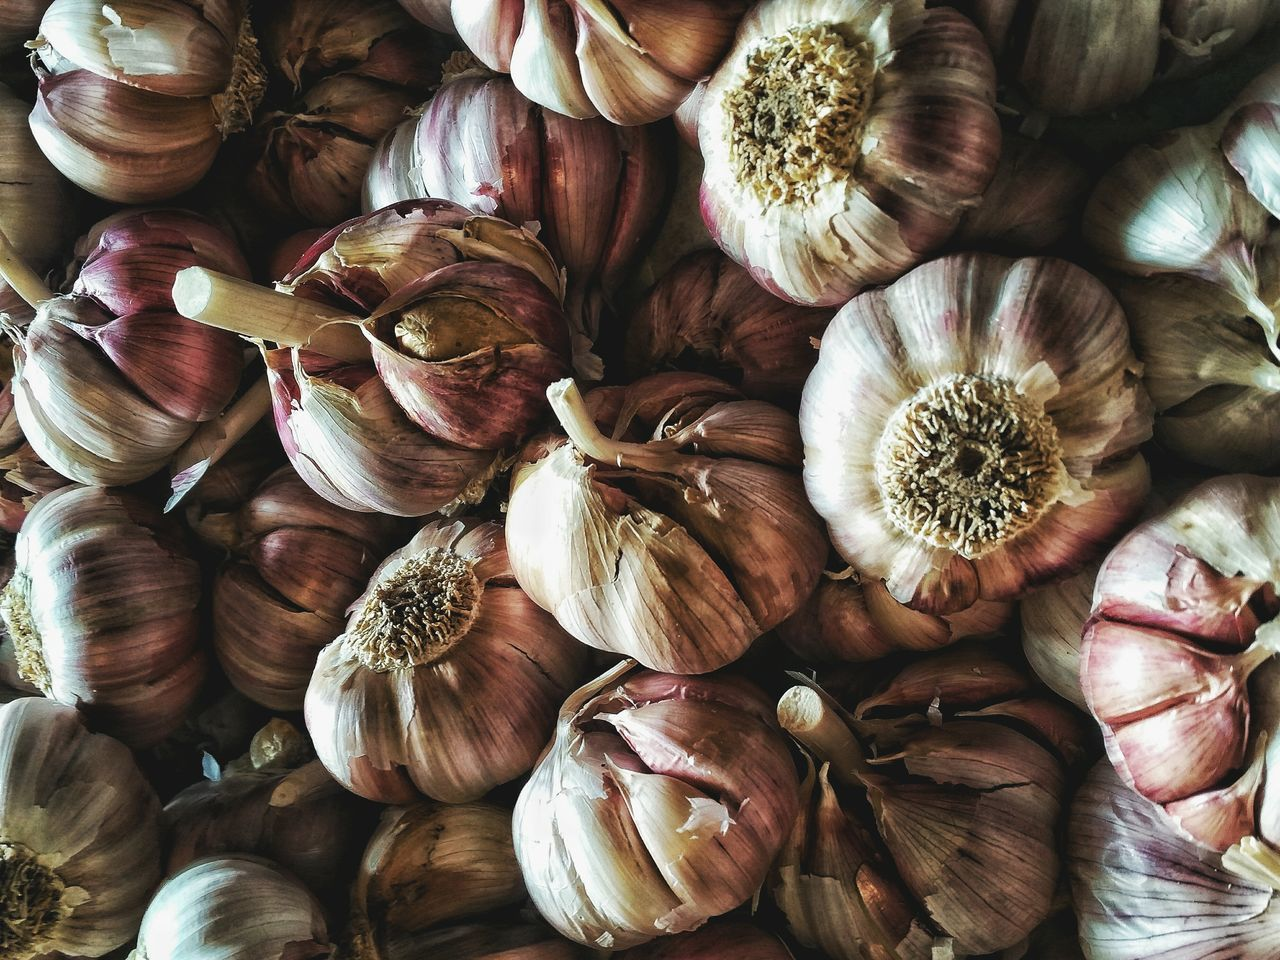 food and drink, food, freshness, wellbeing, spice, ingredient, still life, healthy eating, full frame, garlic, no people, close-up, backgrounds, large group of objects, garlic bulb, indoors, abundance, raw food, directly above, vegetable